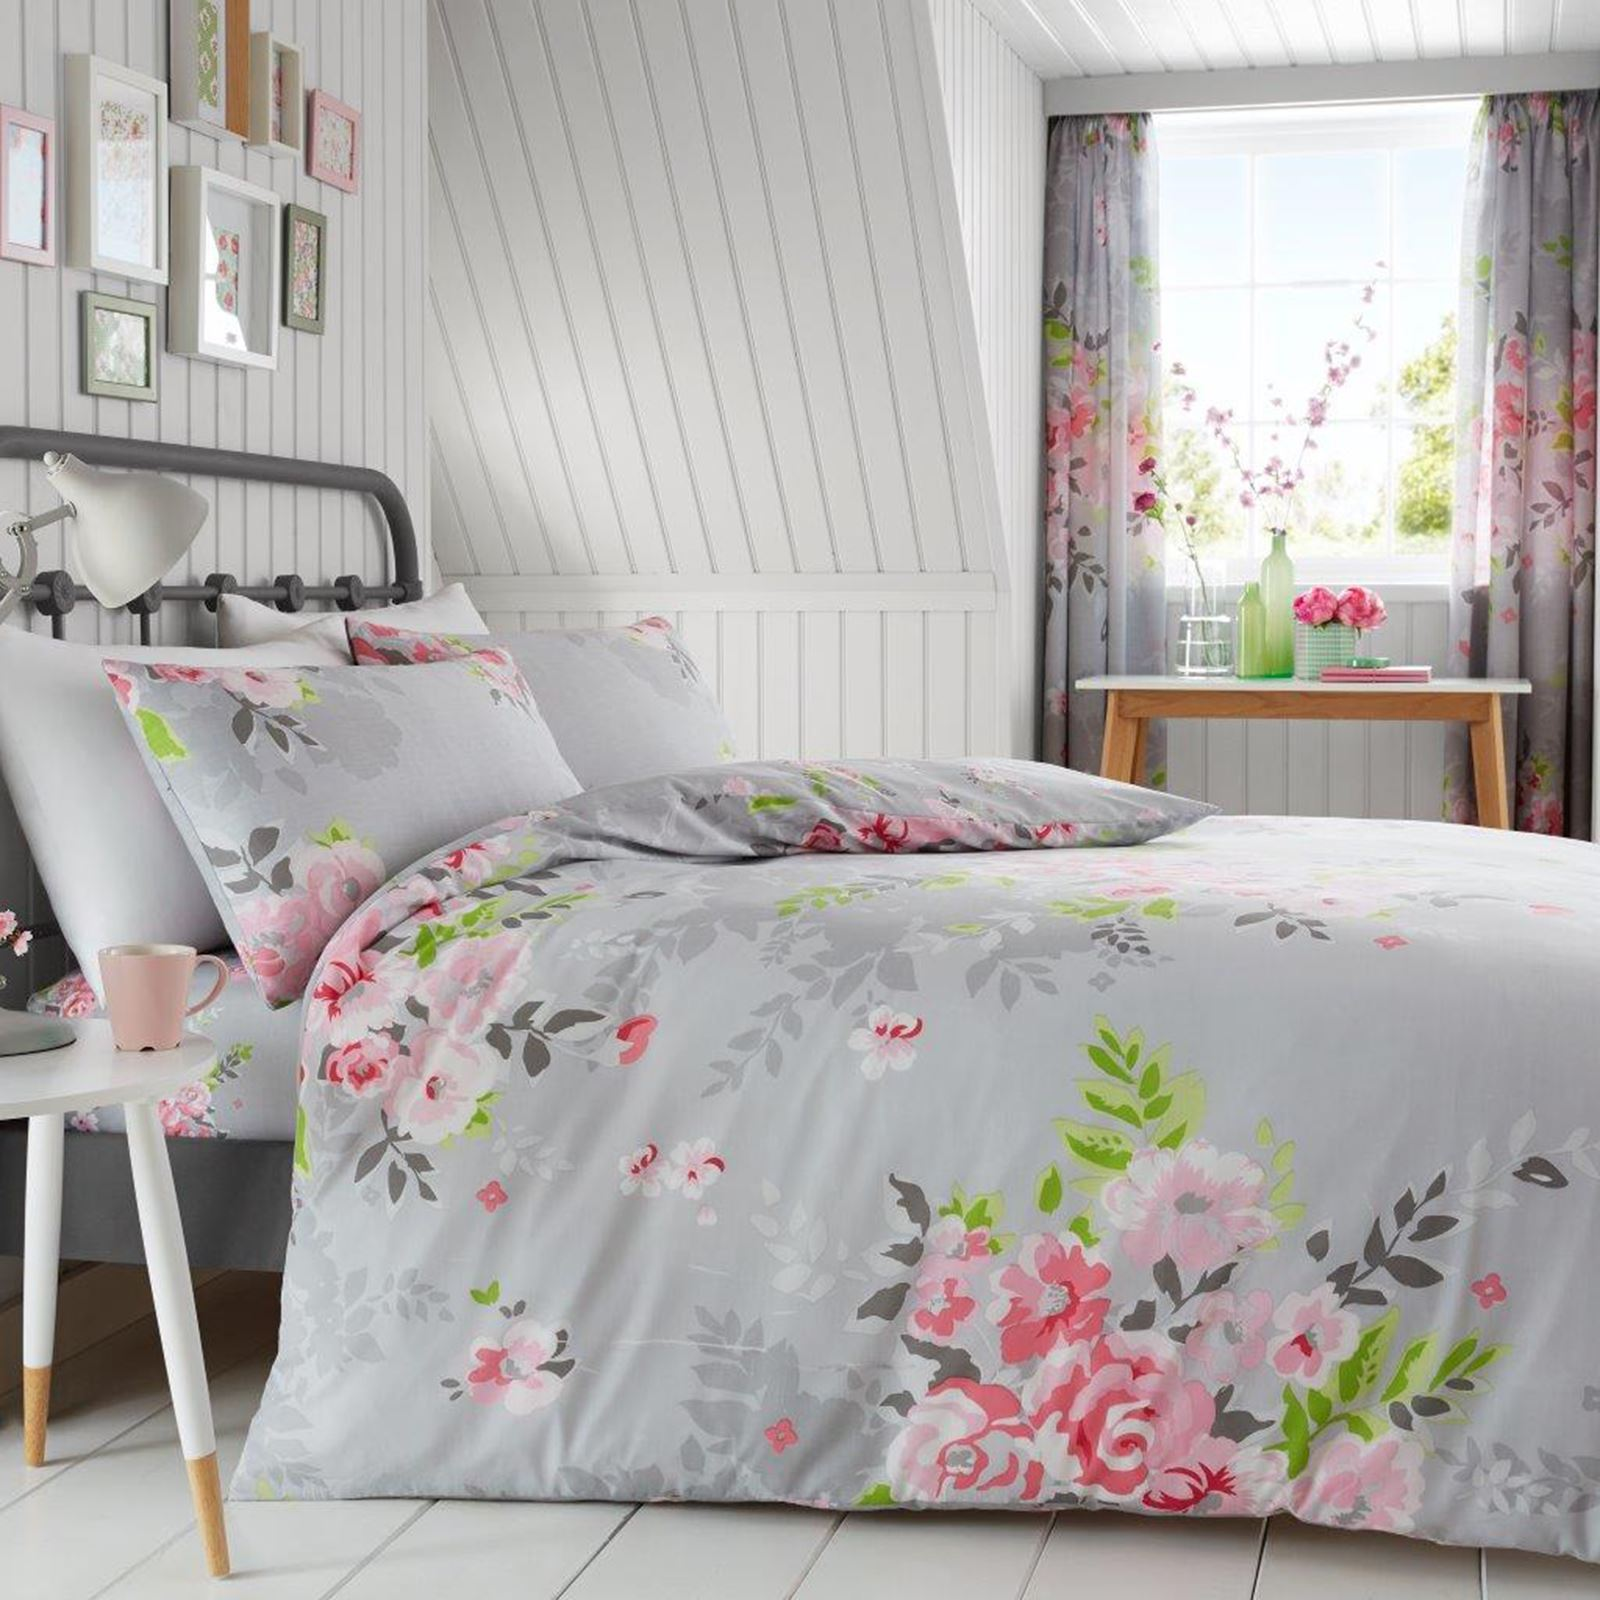 alice blumenmuster king size bettbezug kissenbezug set grau pink bettw sche 5051346133179 ebay. Black Bedroom Furniture Sets. Home Design Ideas